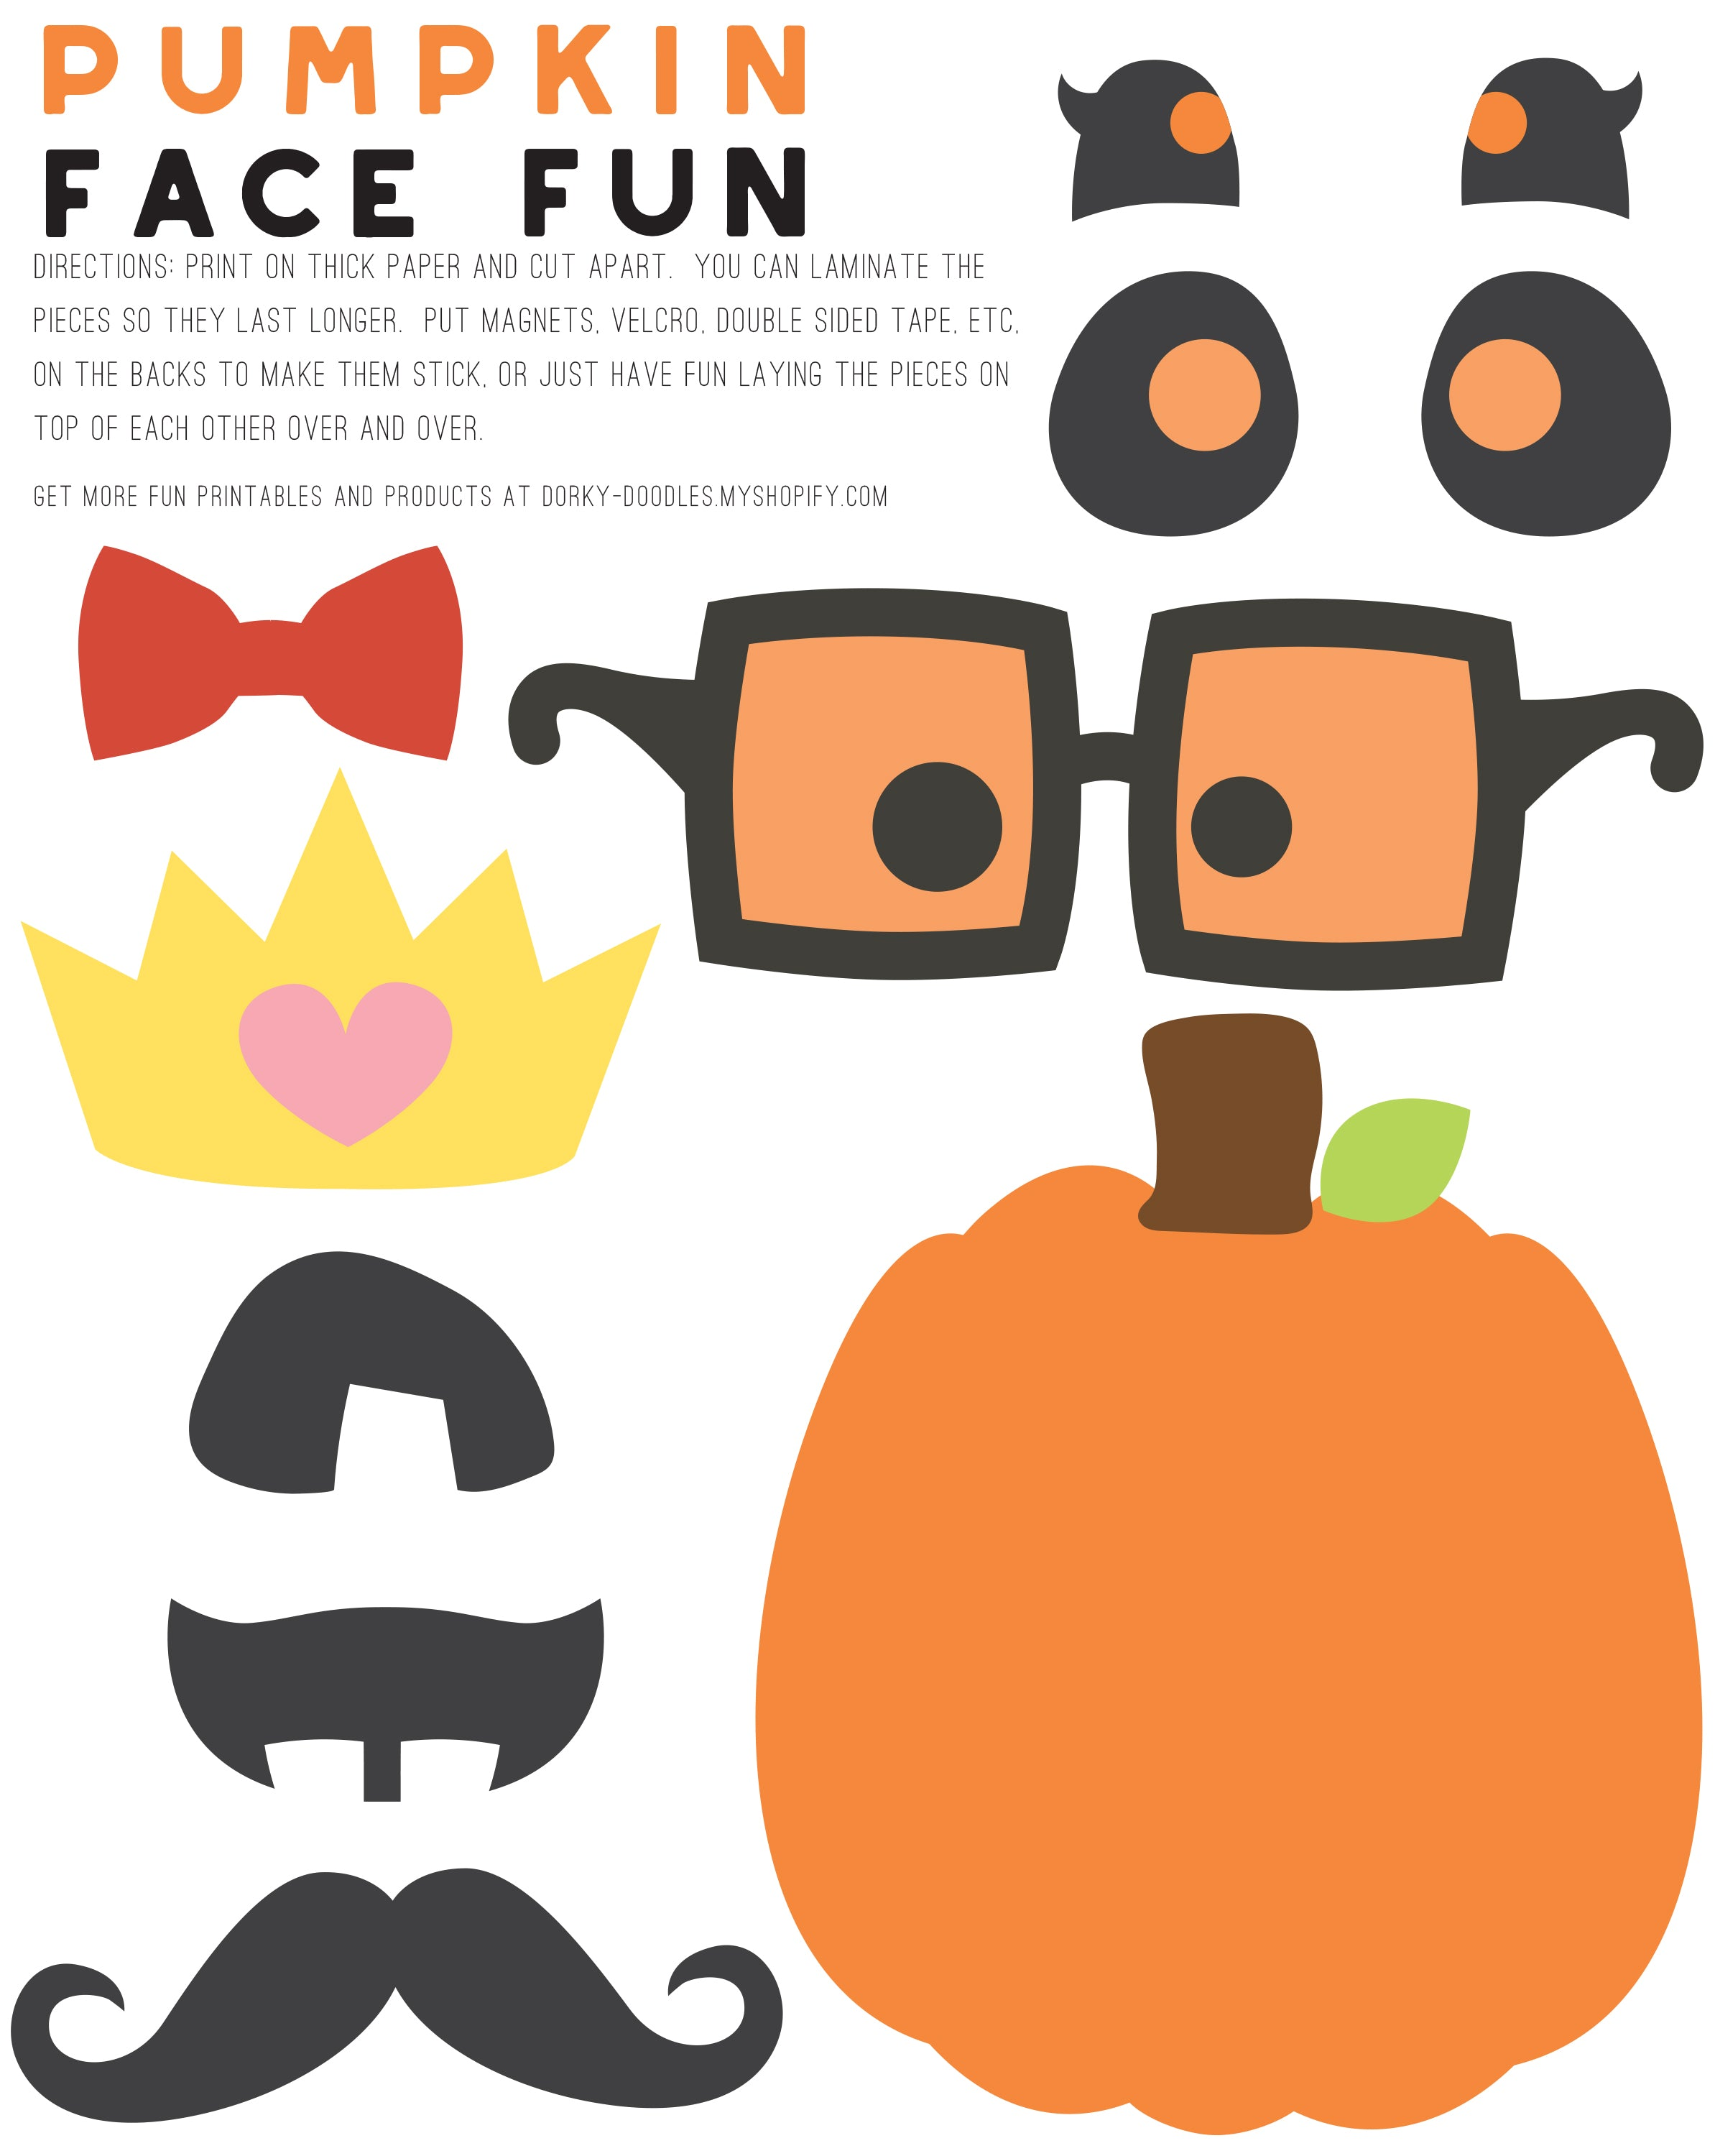 photo relating to Printable Pumpkin Face identify Beautify a Pumpkin Encounter Printable Dorky Doodles